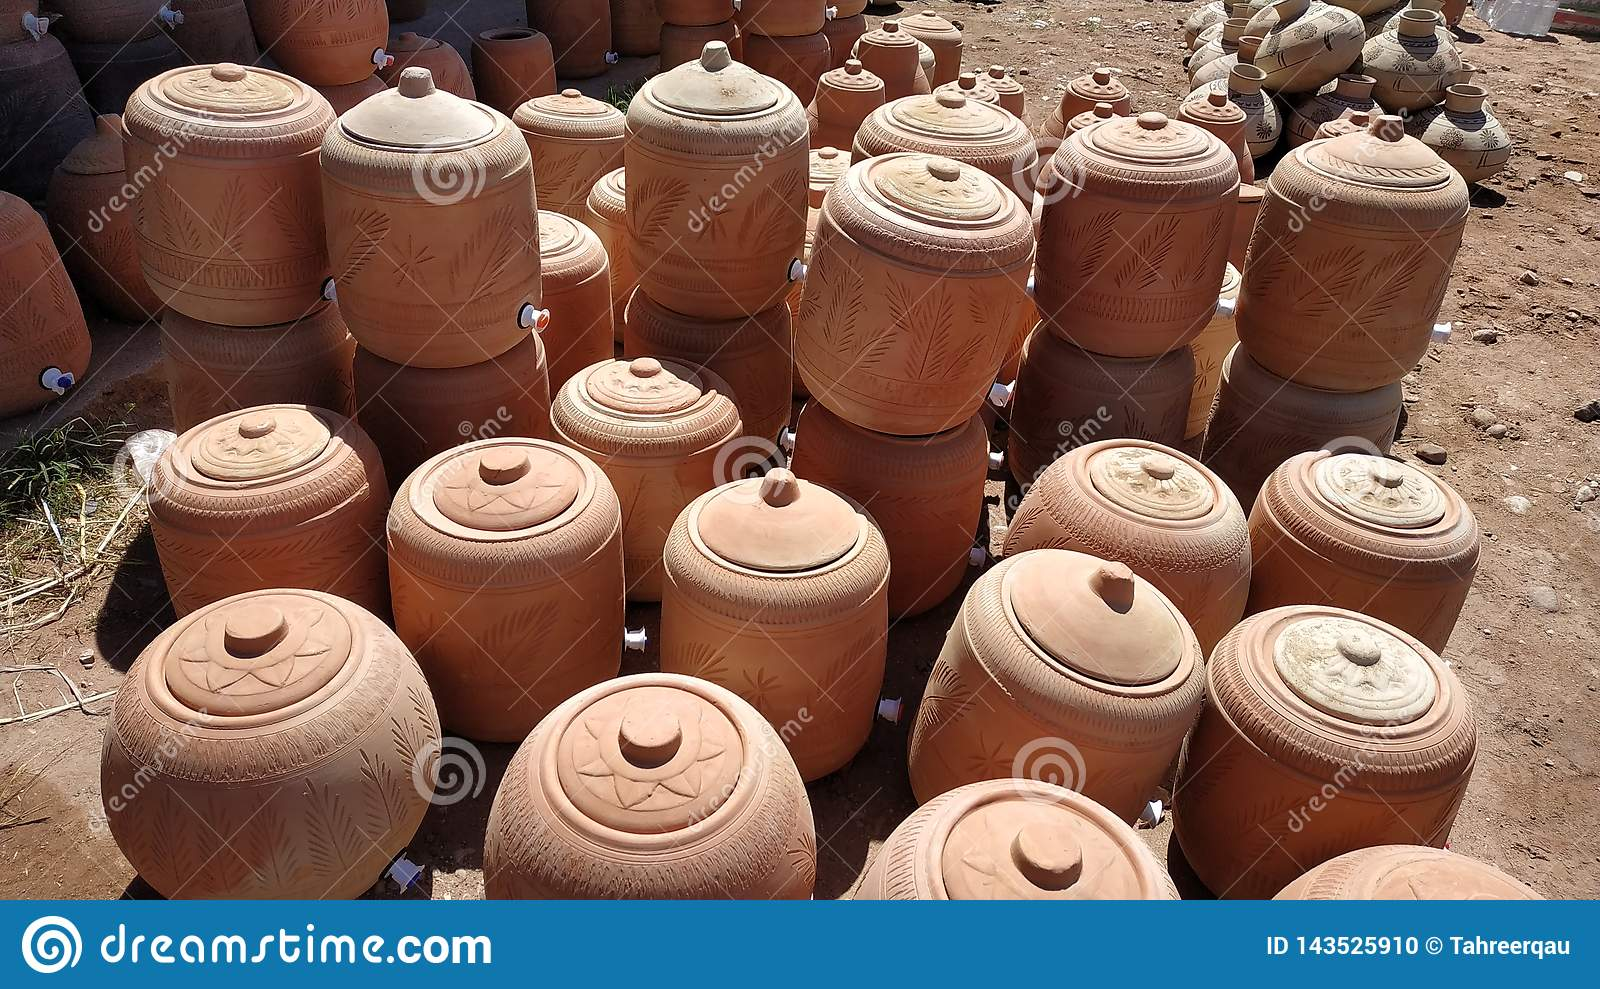 Clay Water Coolers Placed At A Stall Stock Photo - Image of pitchers